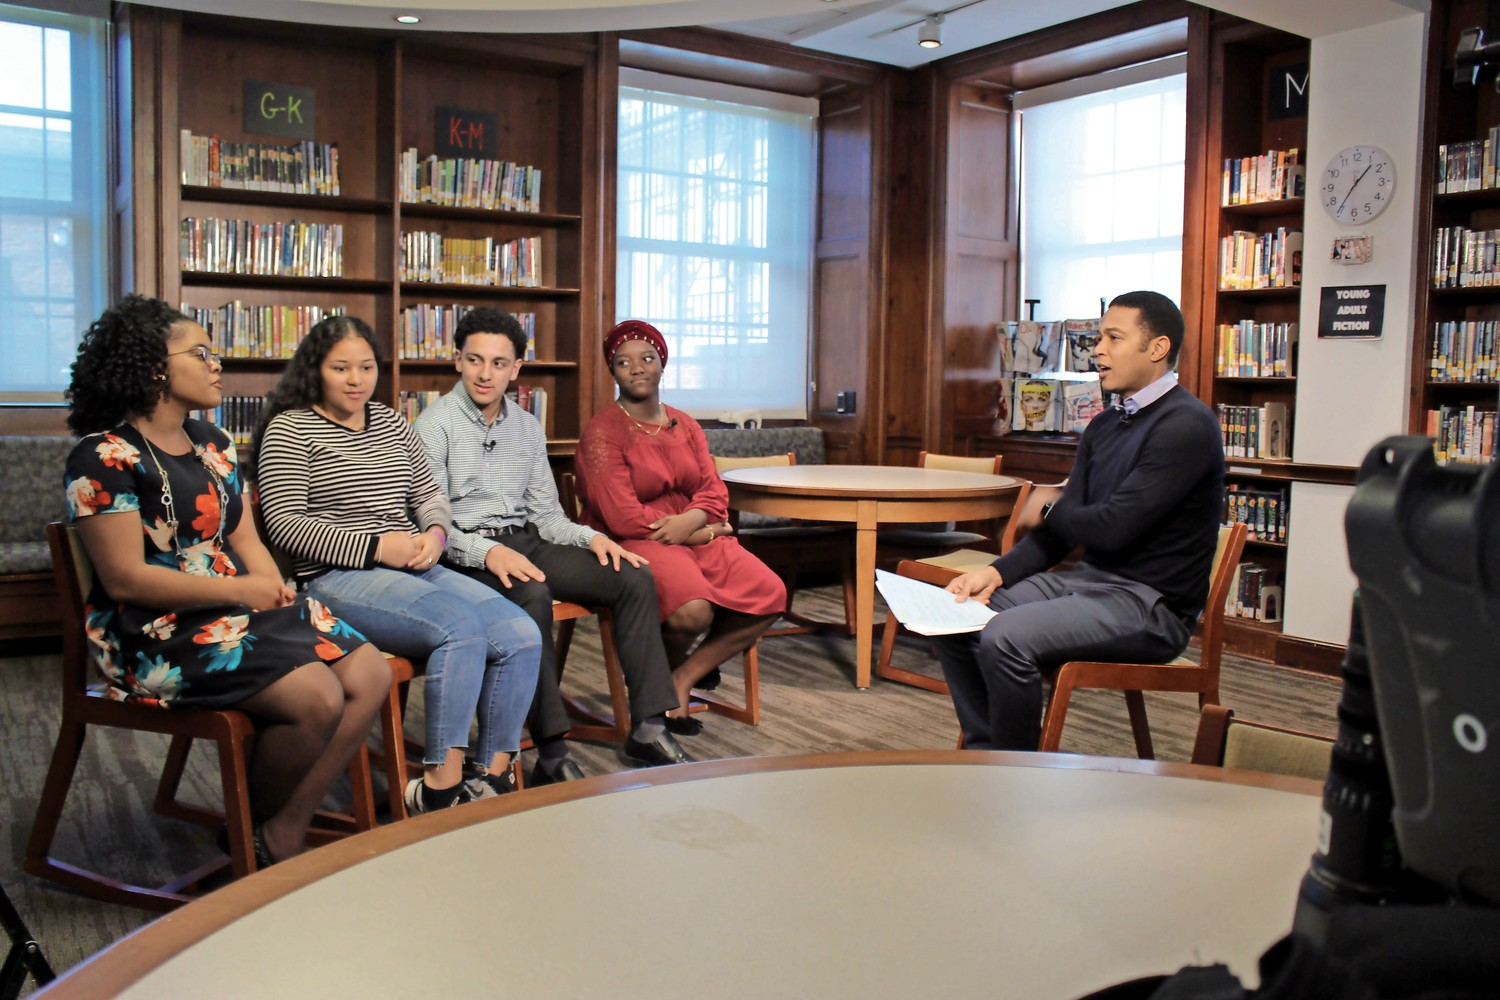 CNN anchor Don Lemon speaks with students at Riverdale Country High School about the importance of higher education. Lemon traveled to the school to meet with students who are Oliver Scholars, which is part of a program that prepares minority students to attend elite universities.